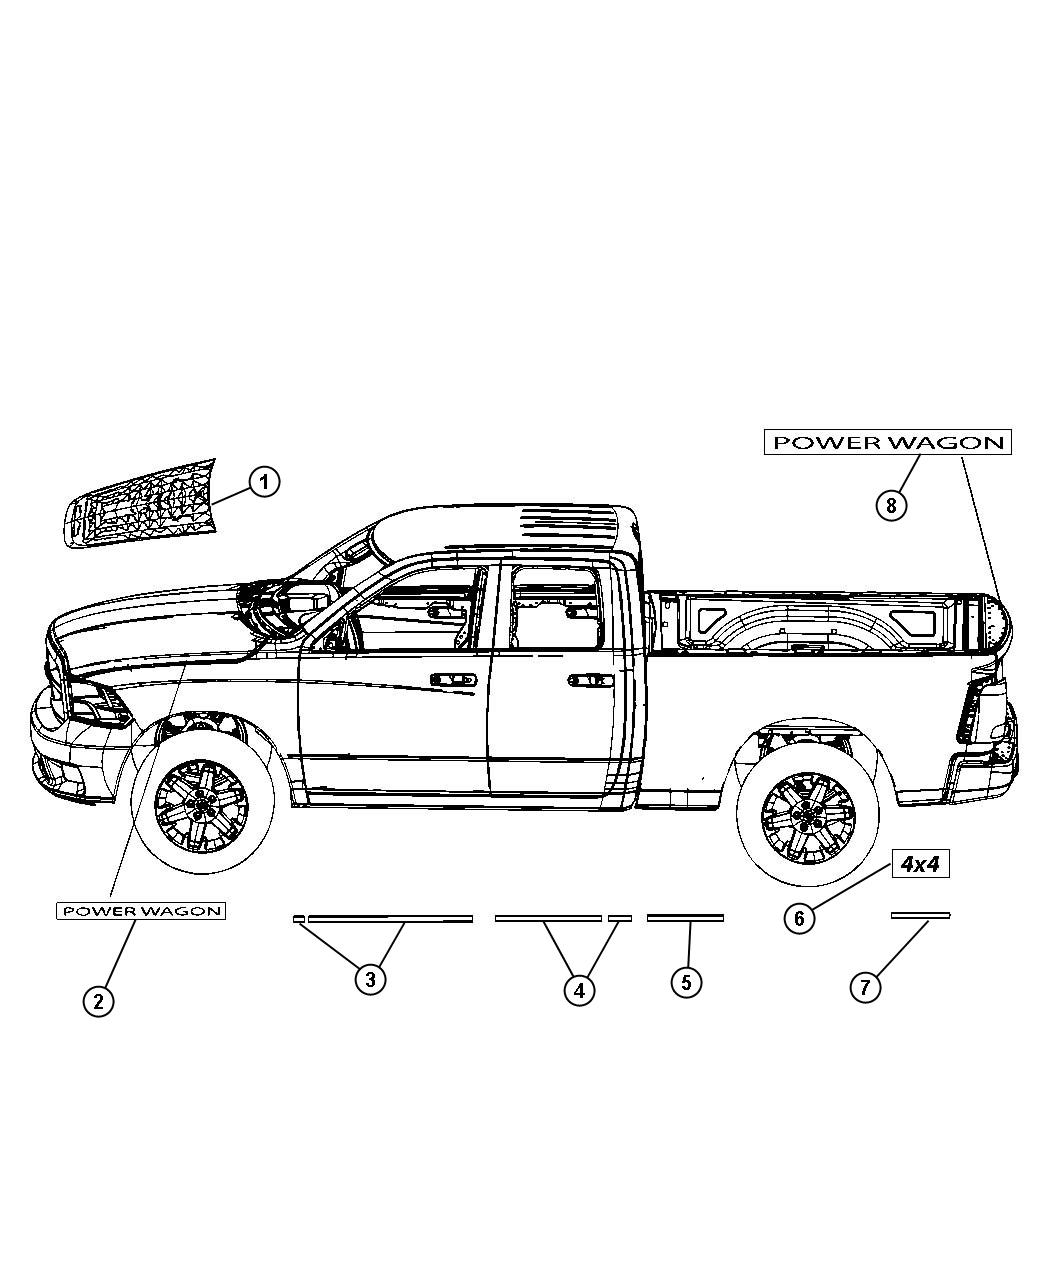 decals power wagon selected part 05182406aa decal right box side. Cars Review. Best American Auto & Cars Review